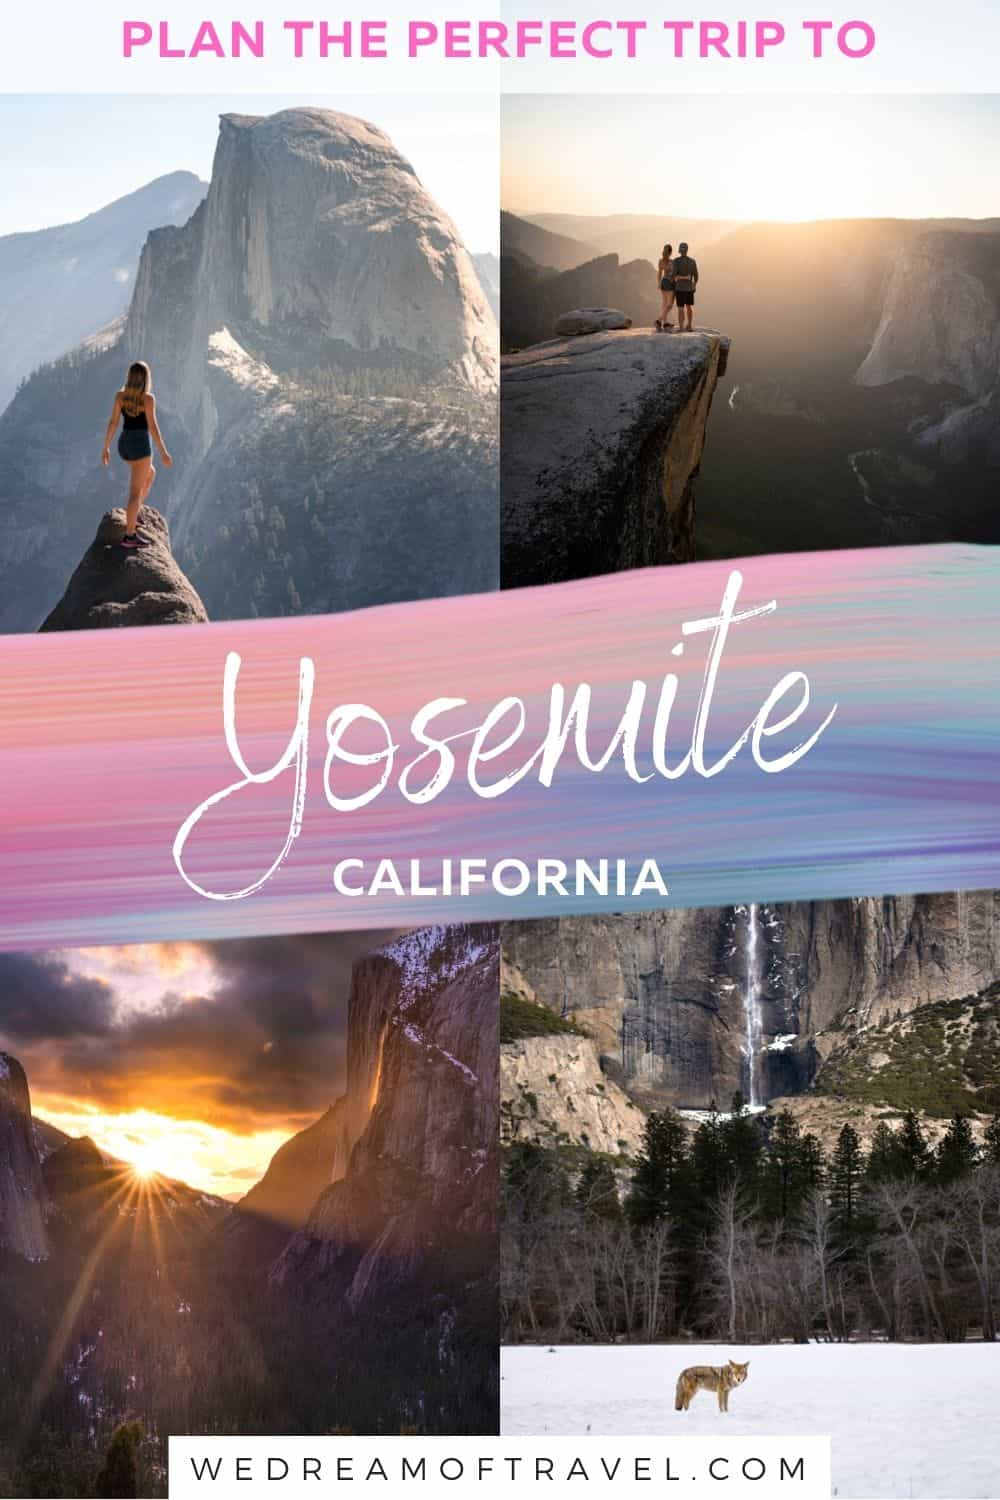 Plan the perfect Yosemite itinerary whether you have for one, two, or three days in Yosemite National Park.